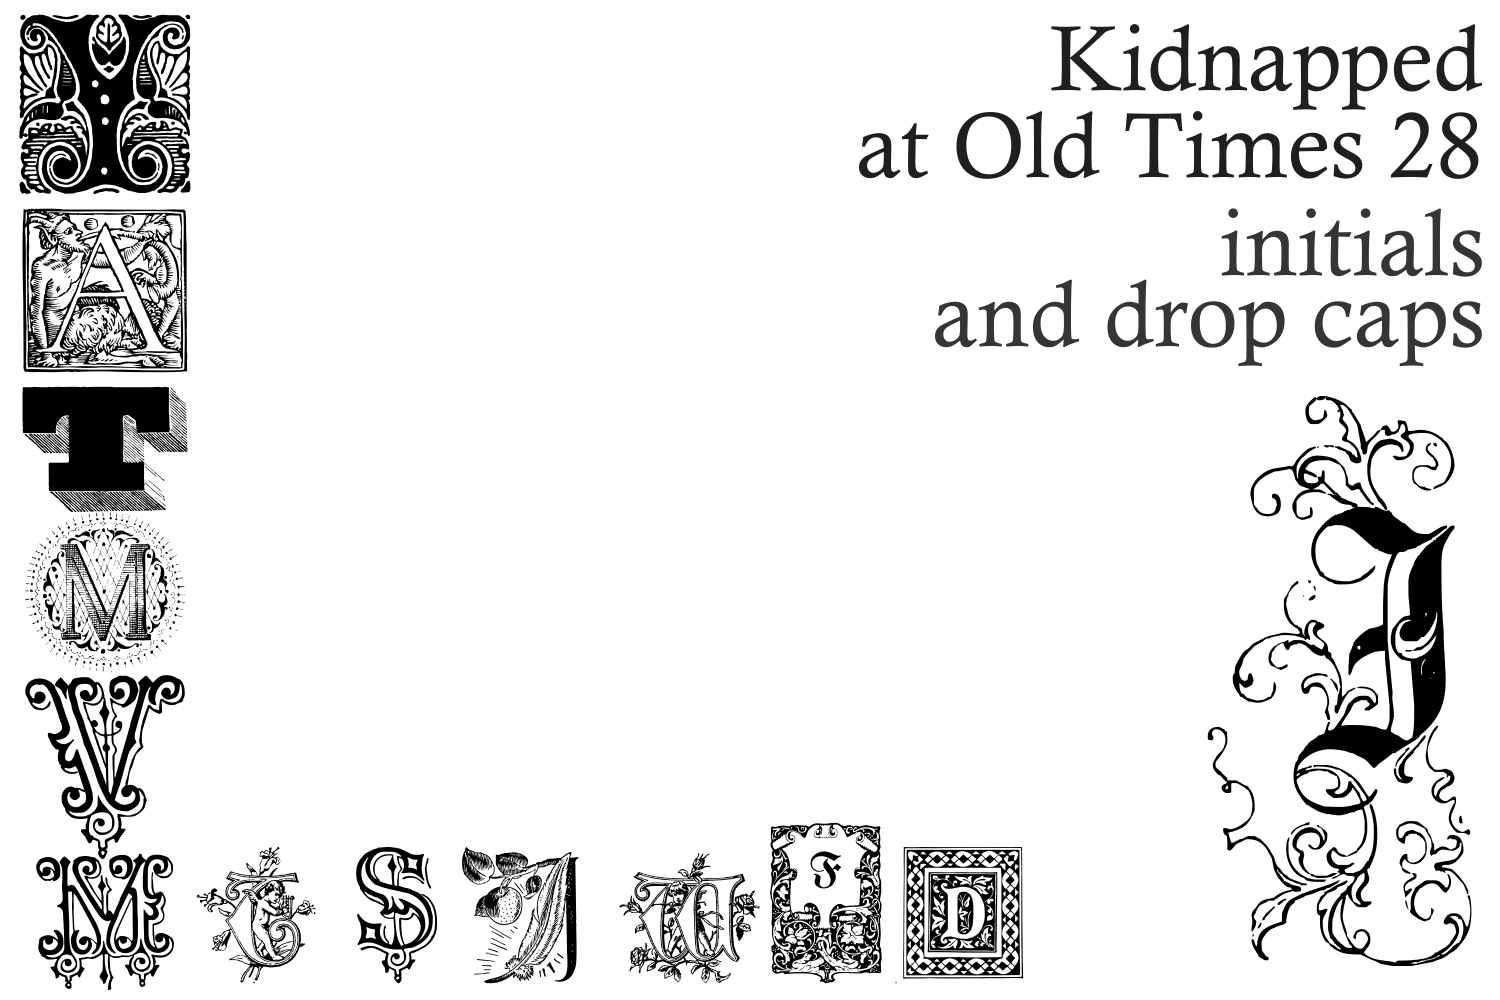 Kidnapped at Old Times 28 example image 1